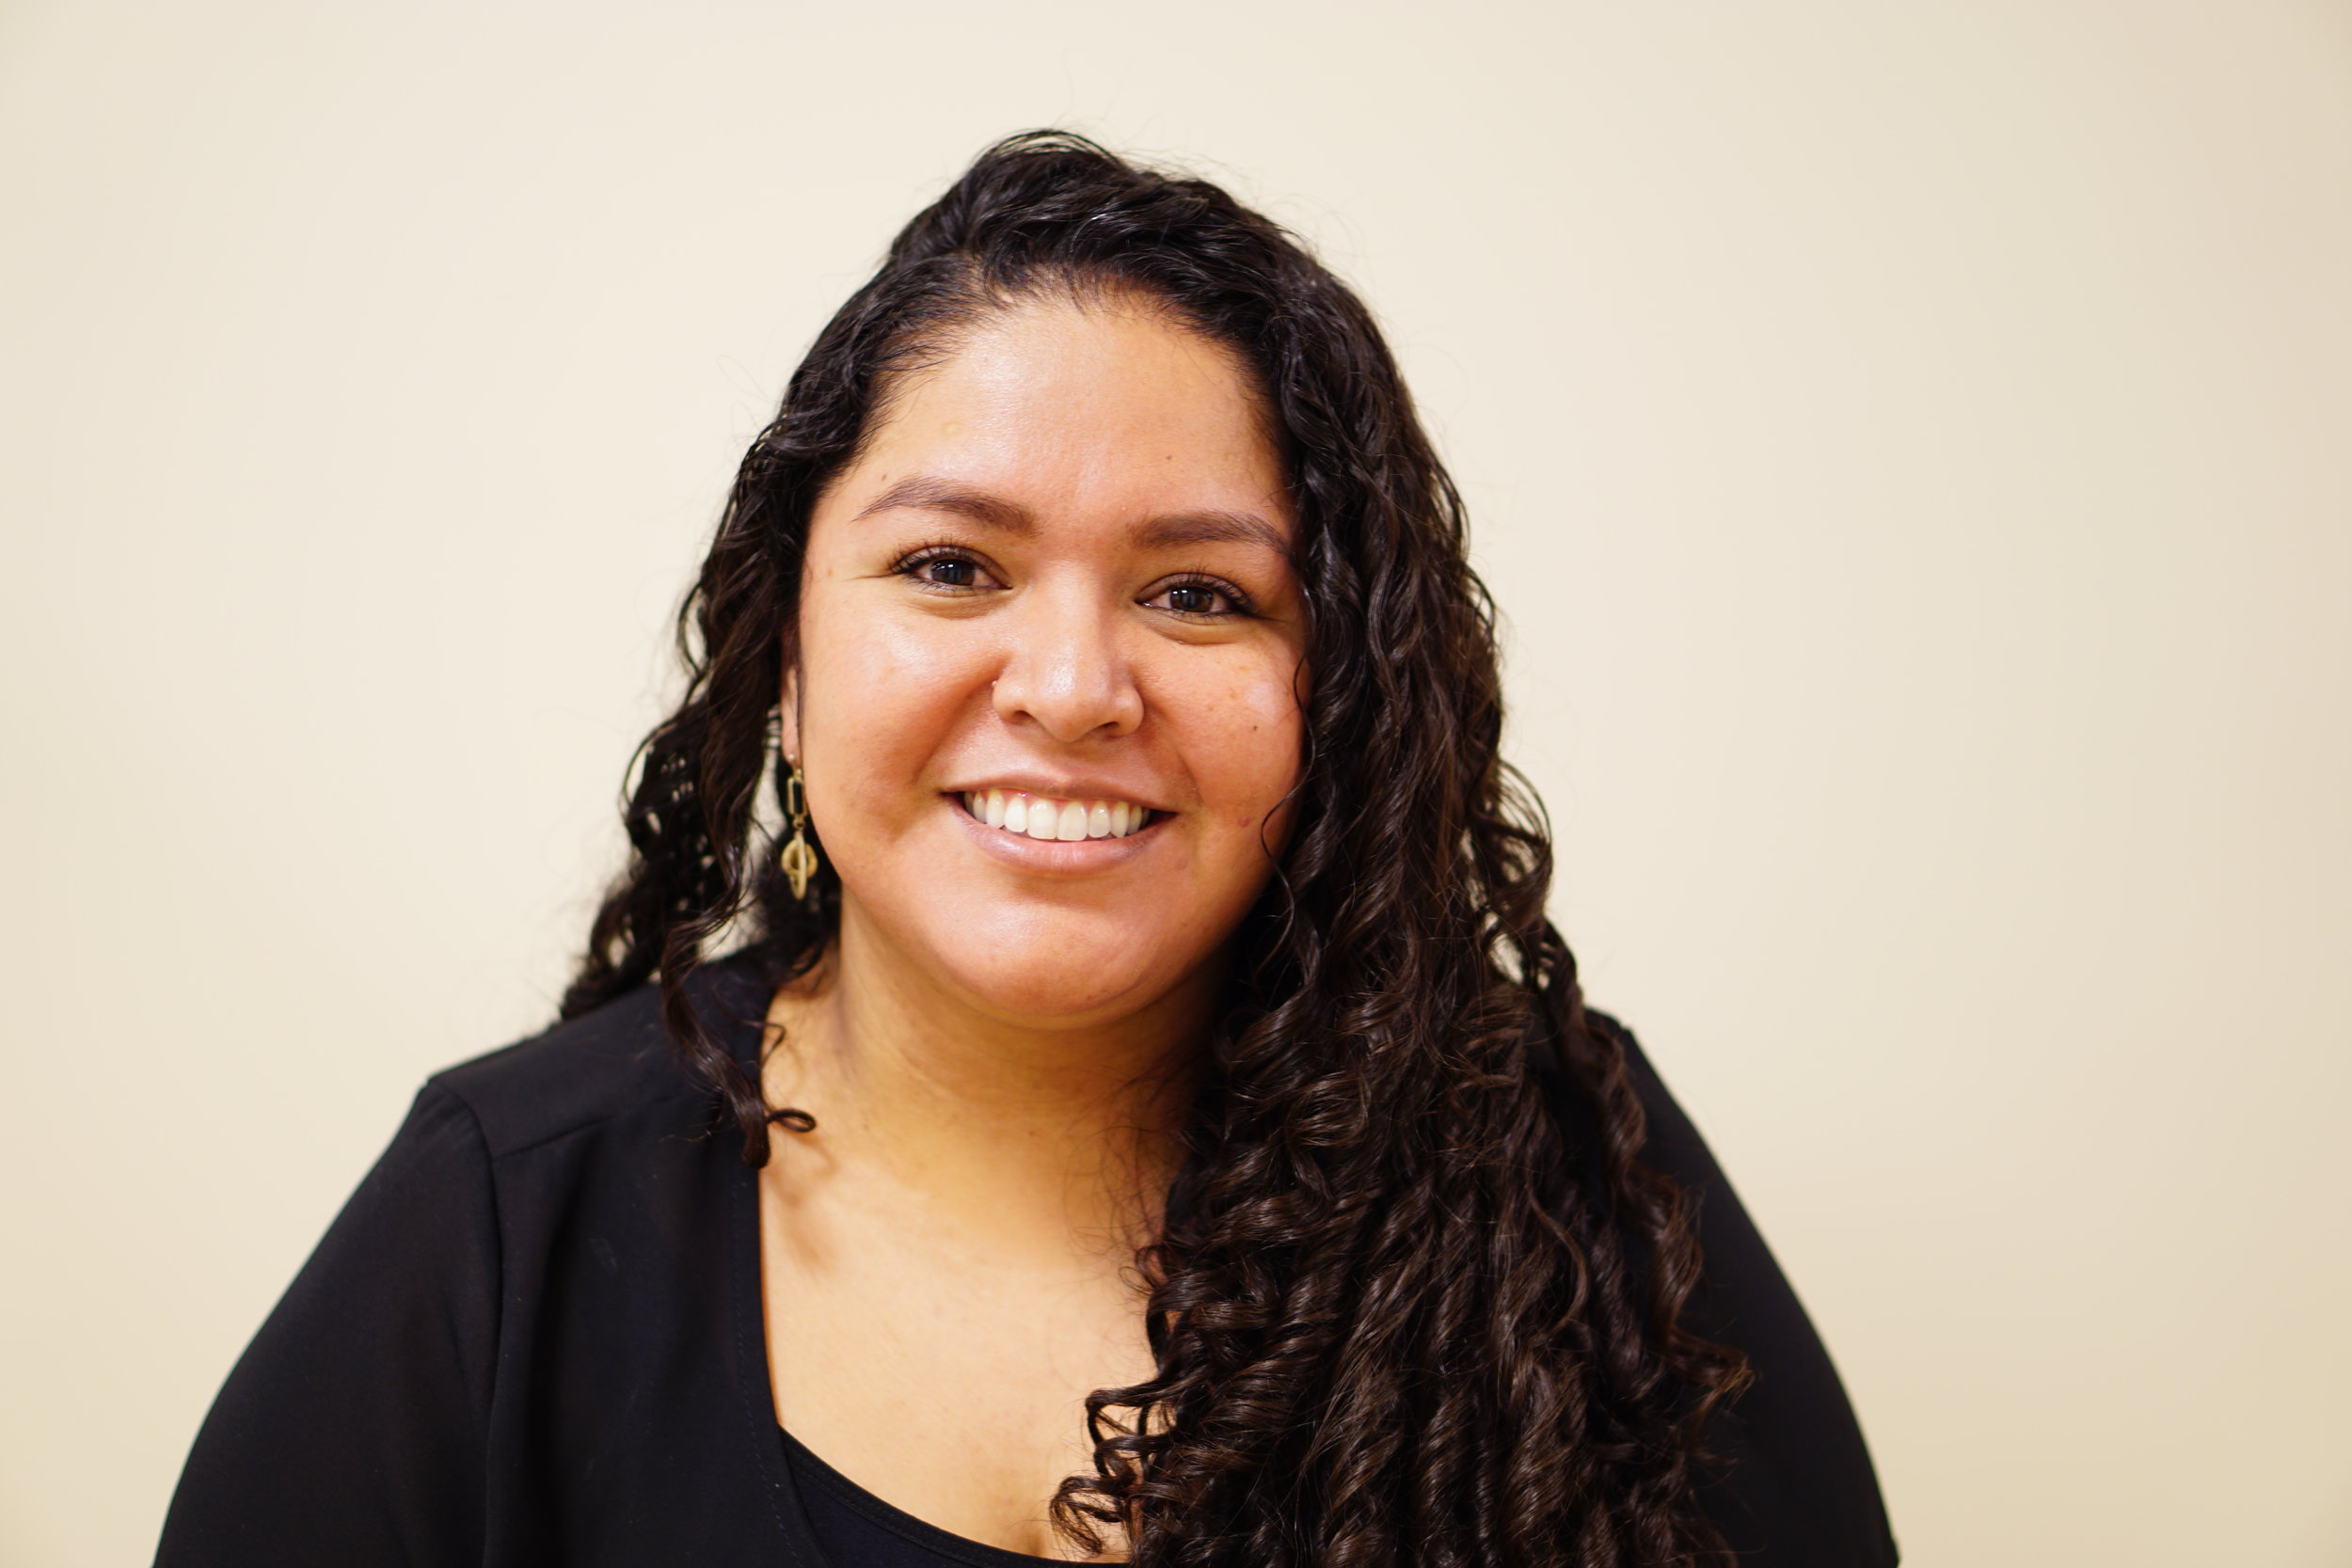 A native of Los Angeles, Abril joined the Animo Production team in 2016. She holds a degree in Biology and harbors a deep love of traditional Mexican music, having been a mariachi (vihuela and voice) for 15 years.